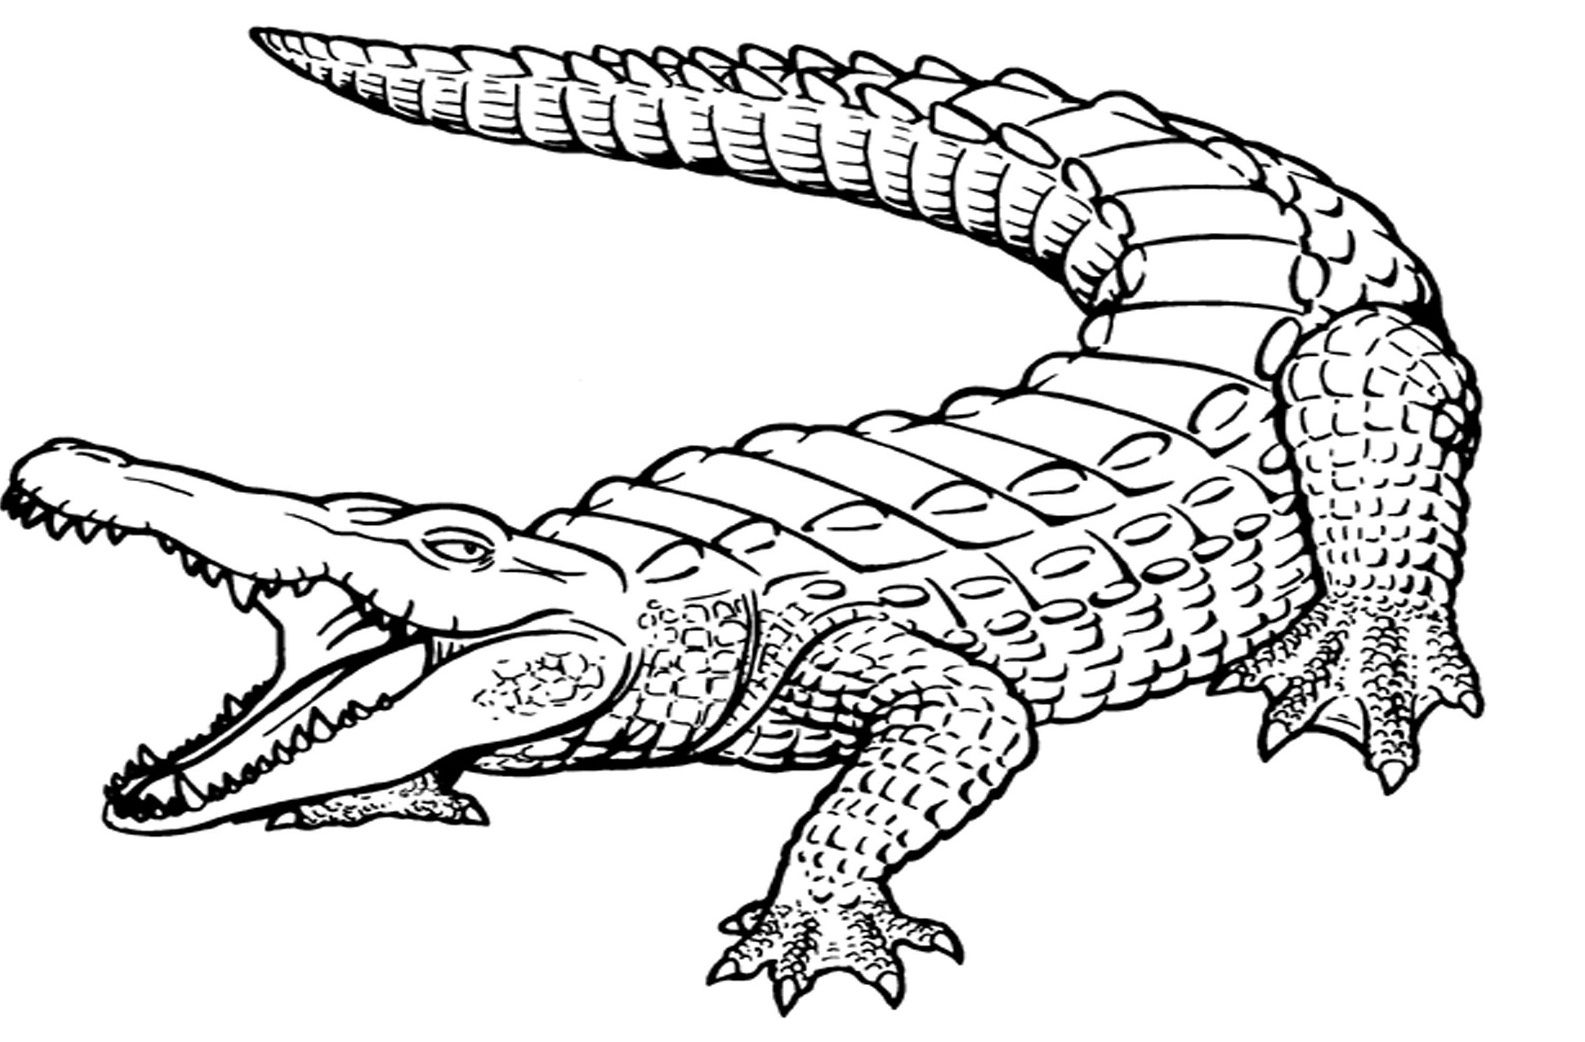 Awesome Crocodile Page To Color Design Printable Coloring Sheet Animal Coloring Pages Turtle Coloring Pages Coloring Pages